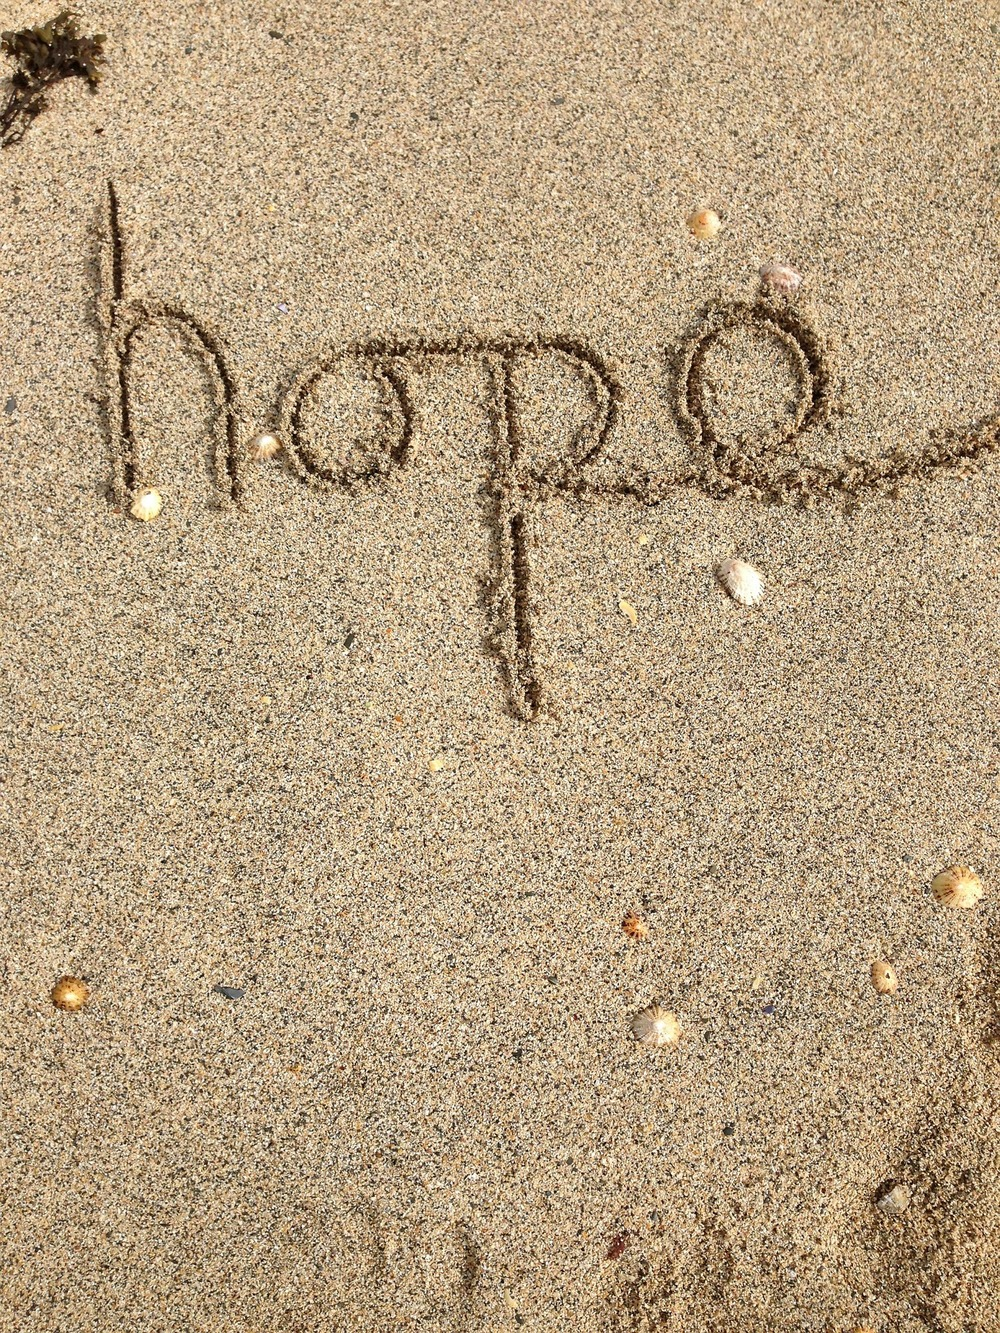 Hope for Recovery from Eating Disorders